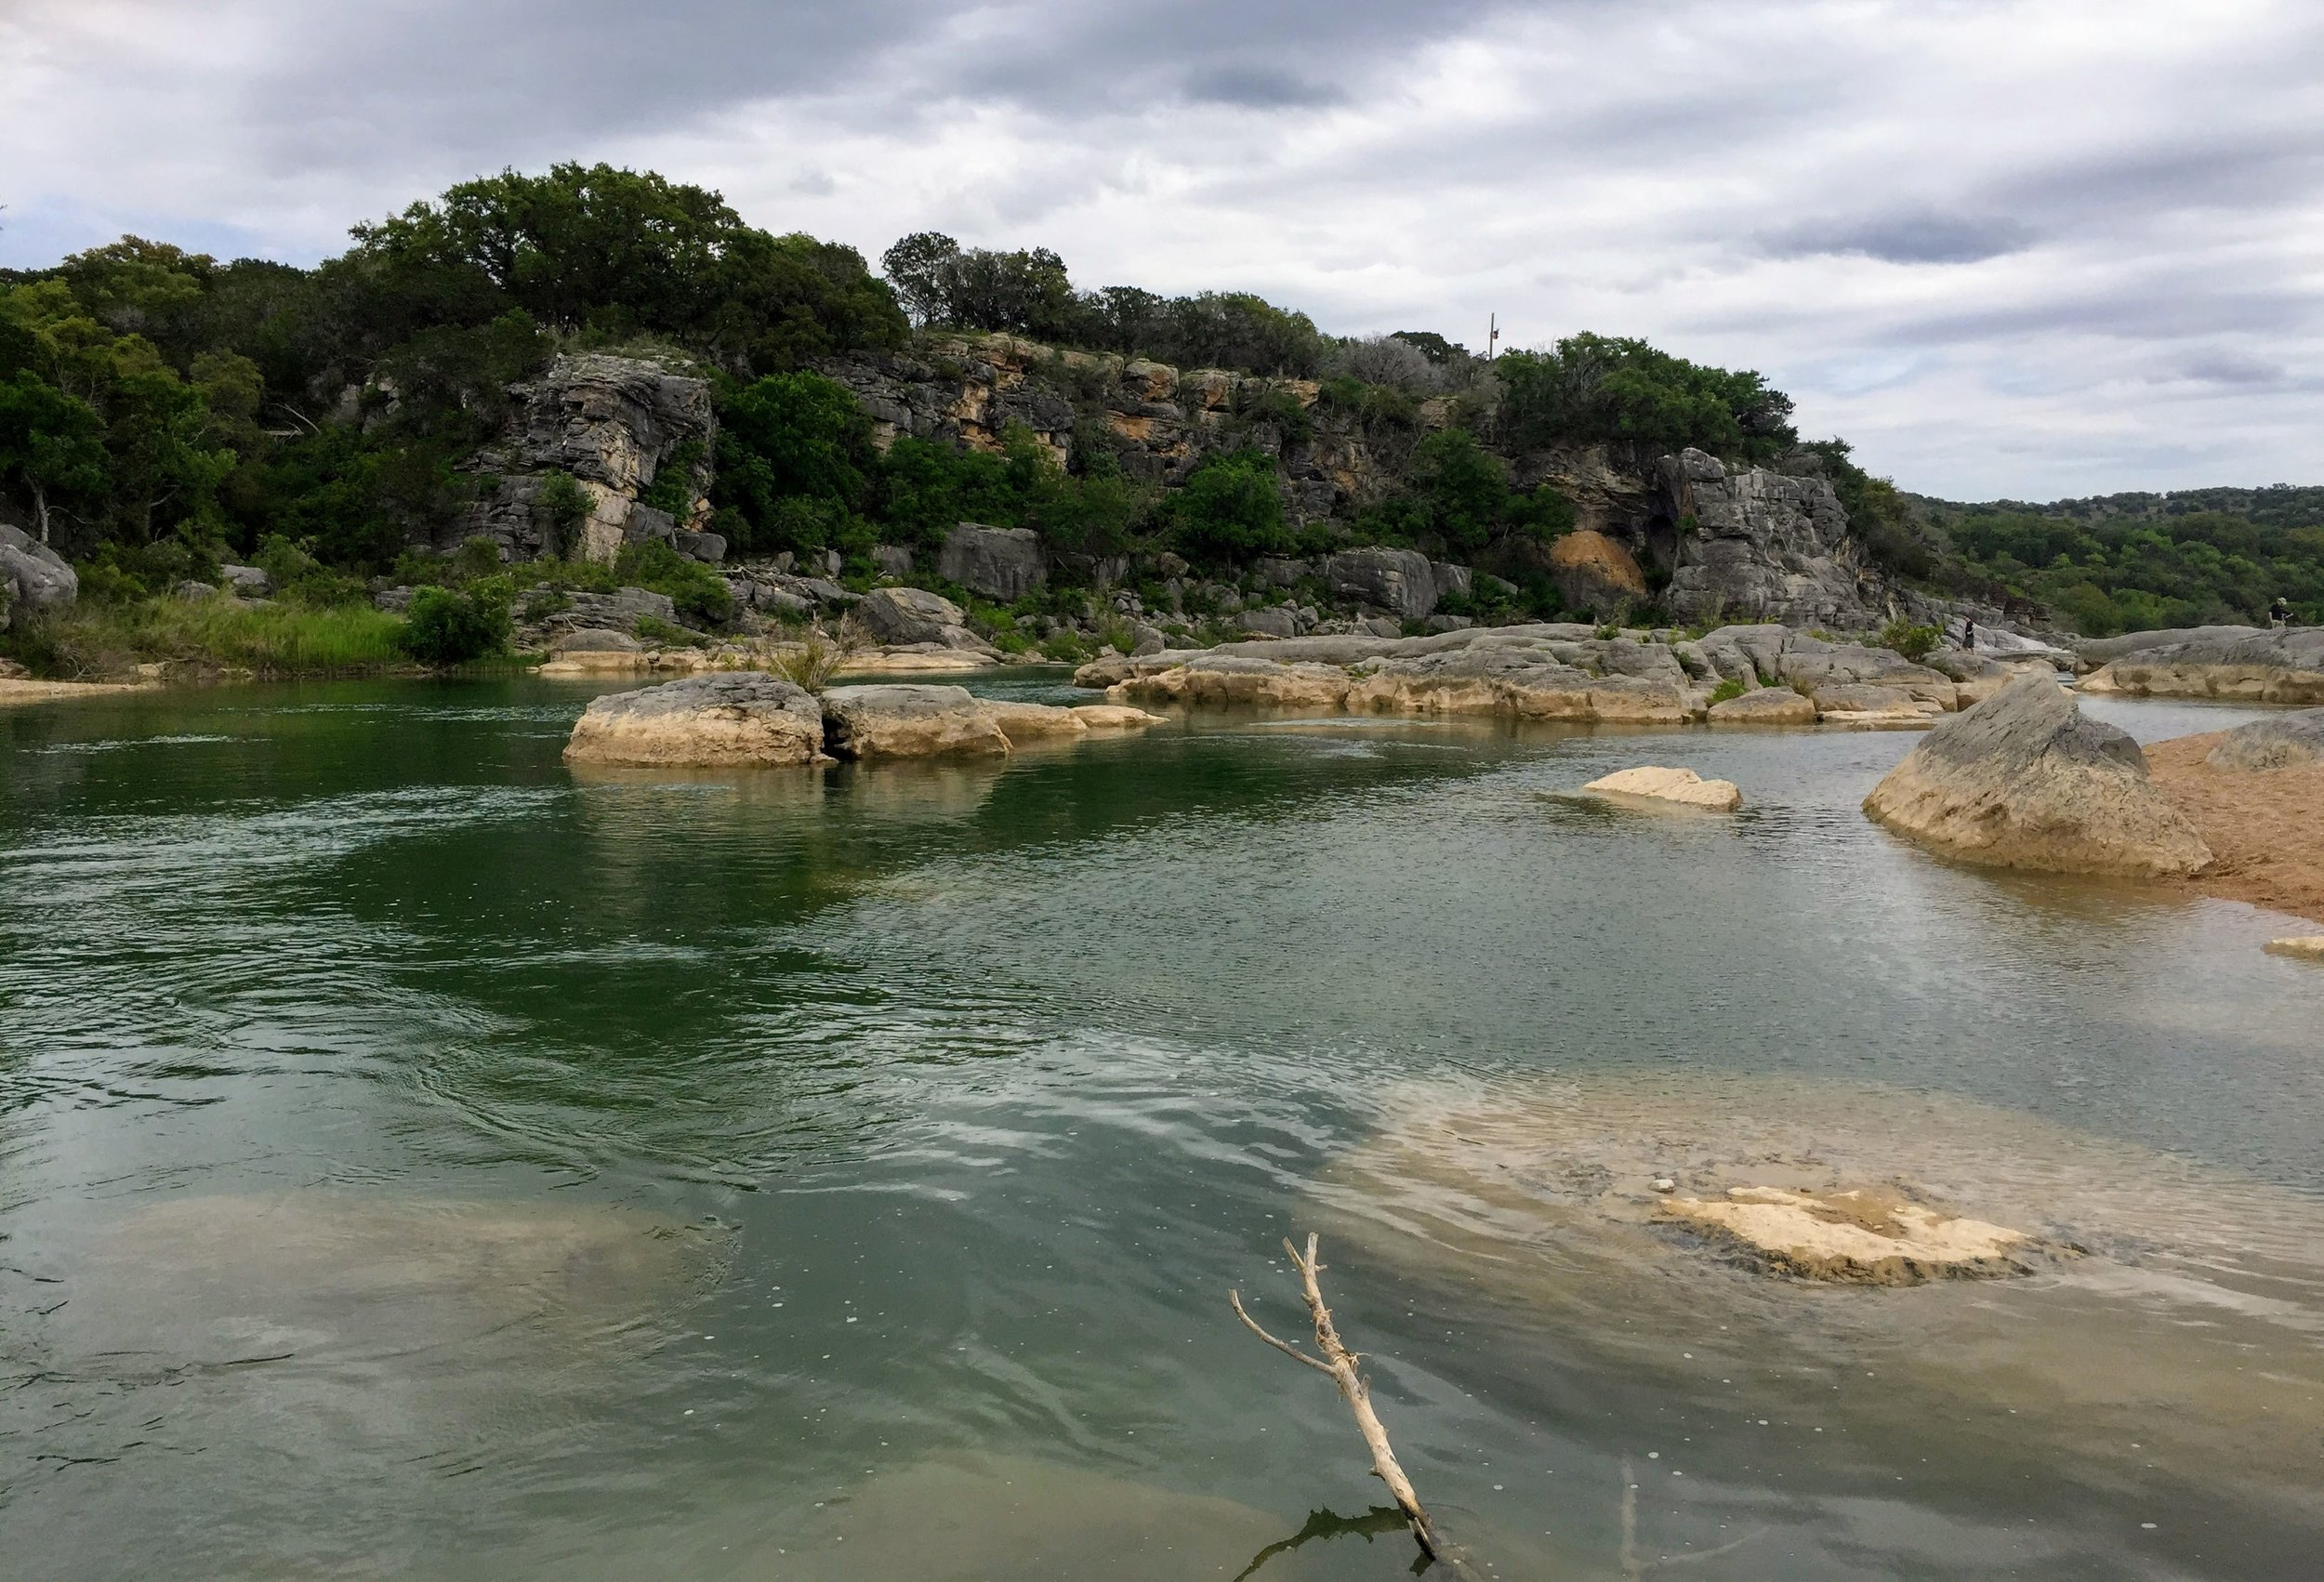 The Pedernales River right before the Falls